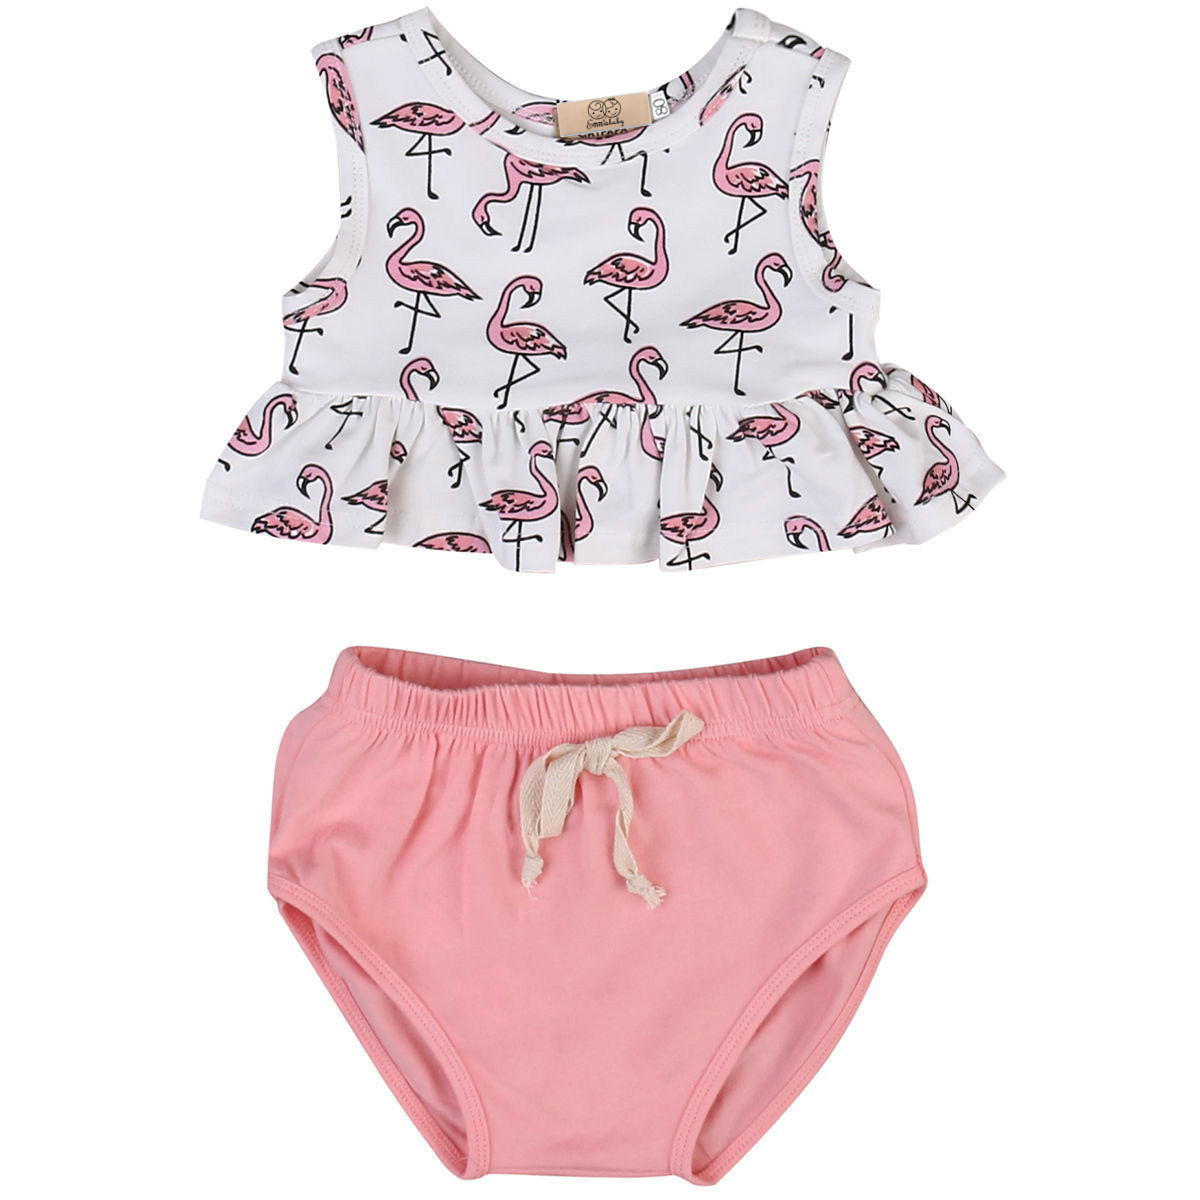 Baby Girl Clothes Set 2017 Hot Cute Baby Girls Clothes Cotton Tops Vest + Shorts Bottoms Outfits 0-18M Baby clothing sets платье для девочек baby girl clothes 2015 baby baby girls clothes